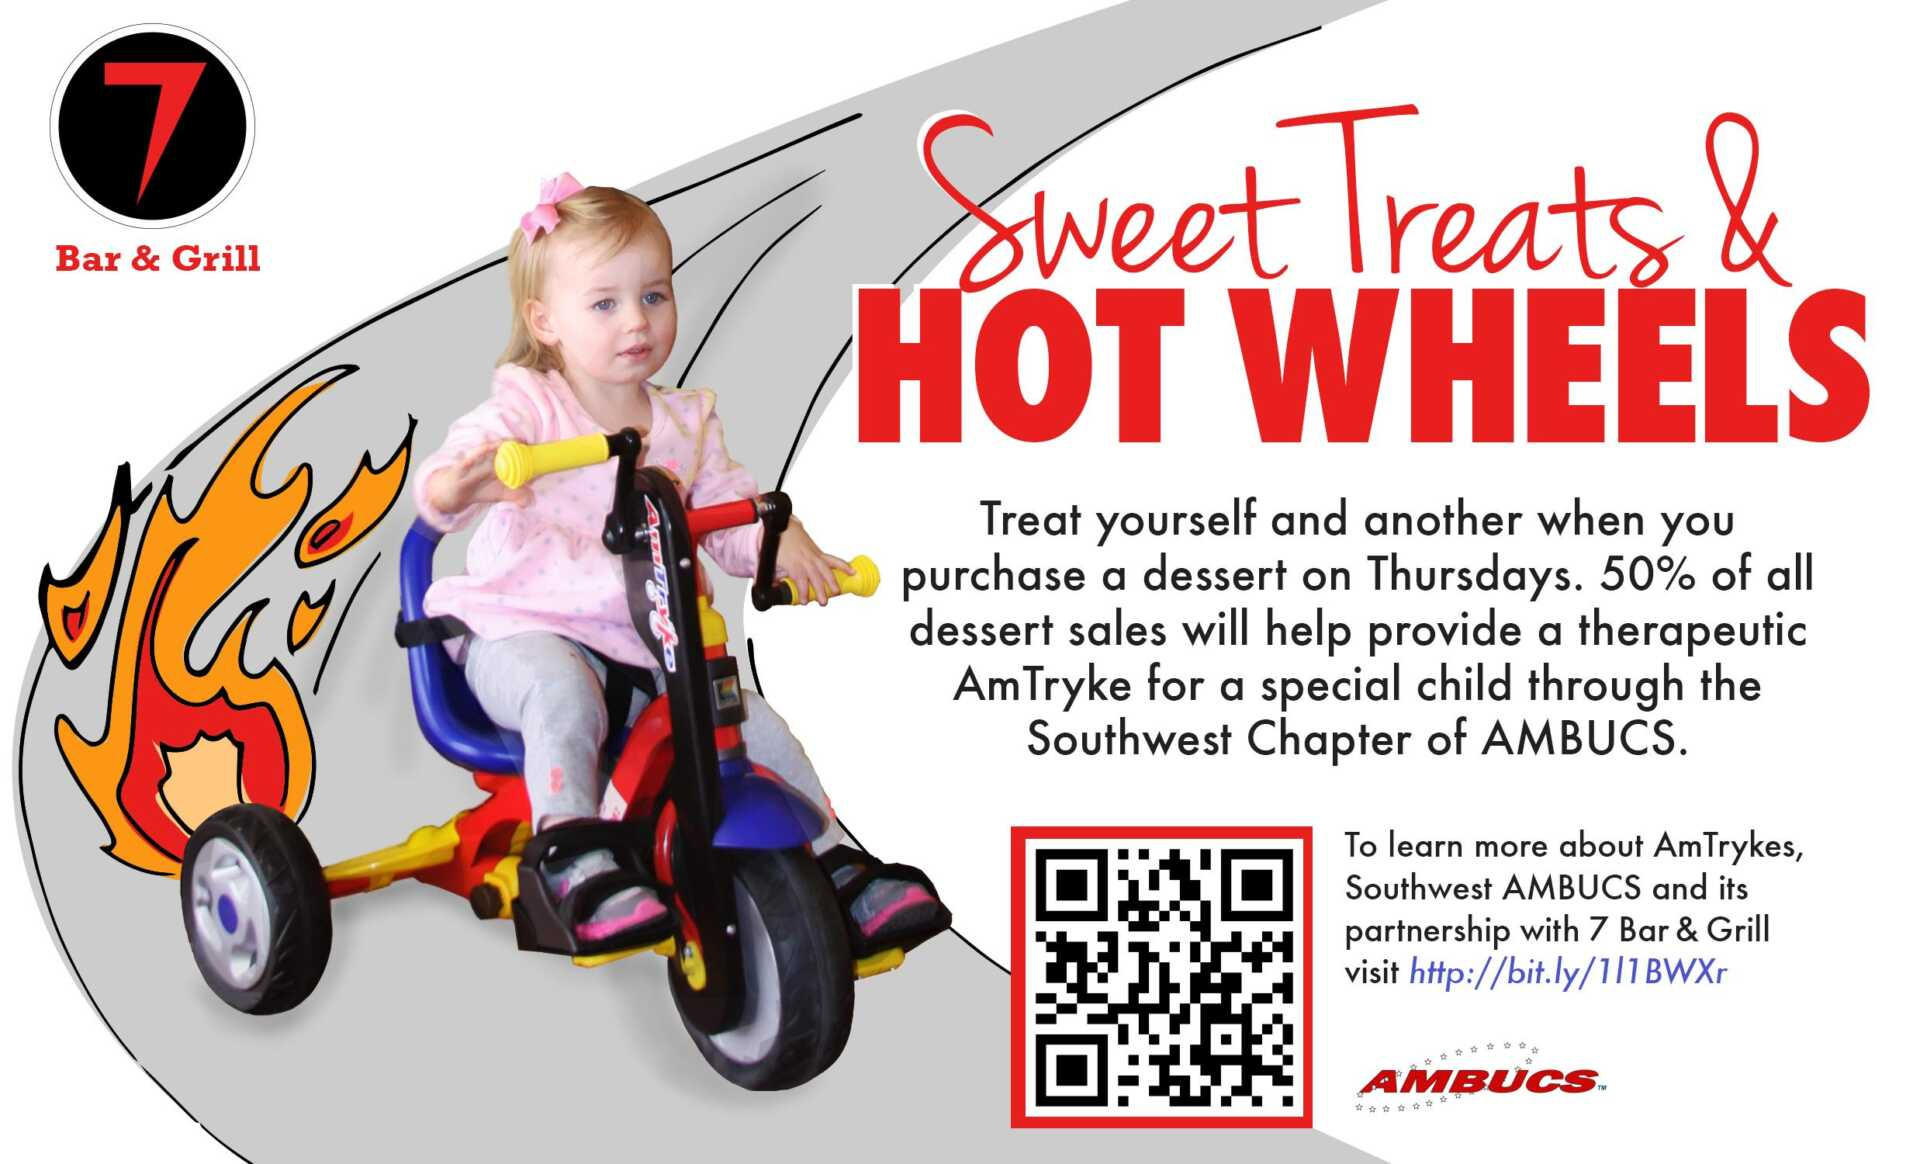 7 Bar & Grill AMBUCS Sweet Treats and Hot Wheels